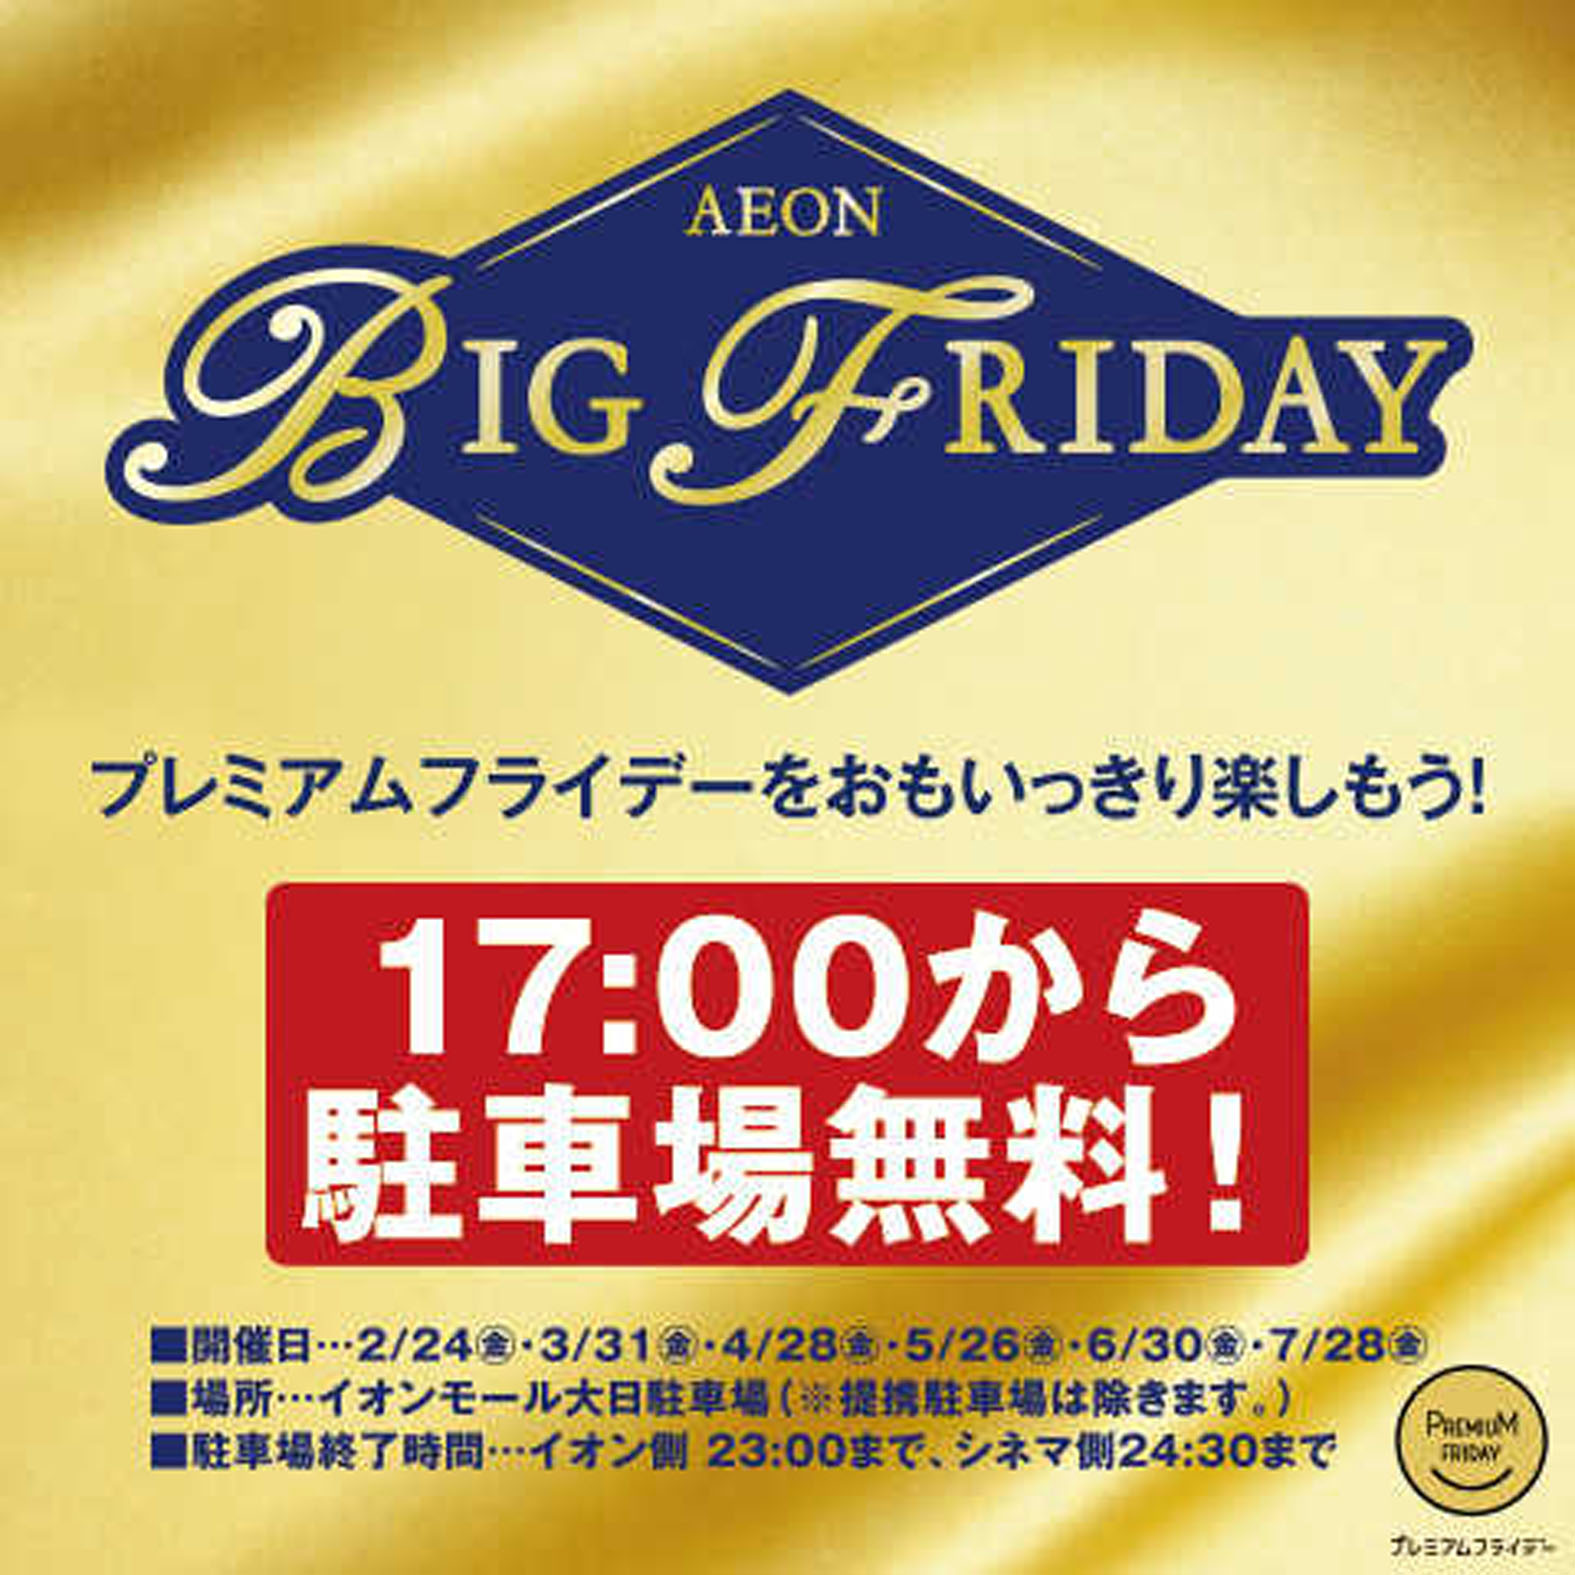 big-friday